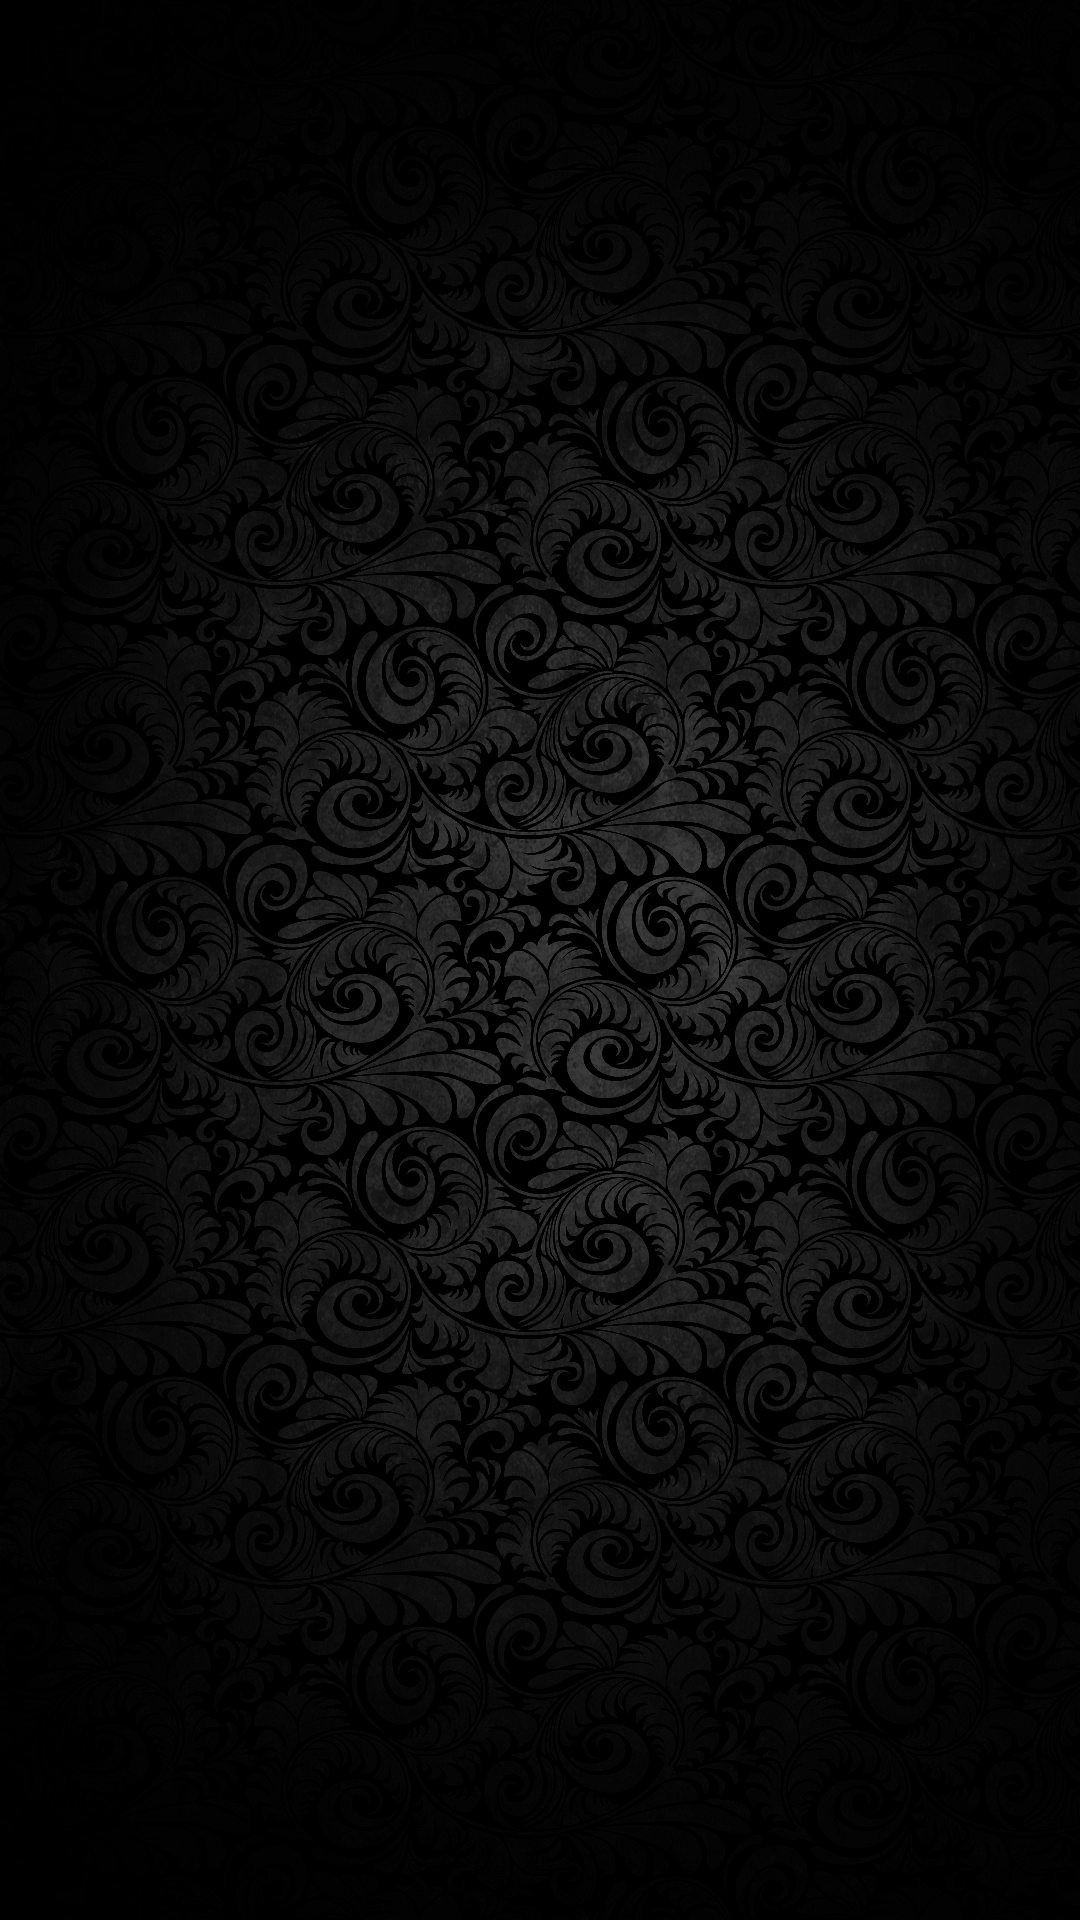 black phone backgrounds fresh wallpaper full hd 1080 x 1920 smartphone dark elegant backgrounds wallpaper in 2019 2019 of black phone backgrounds